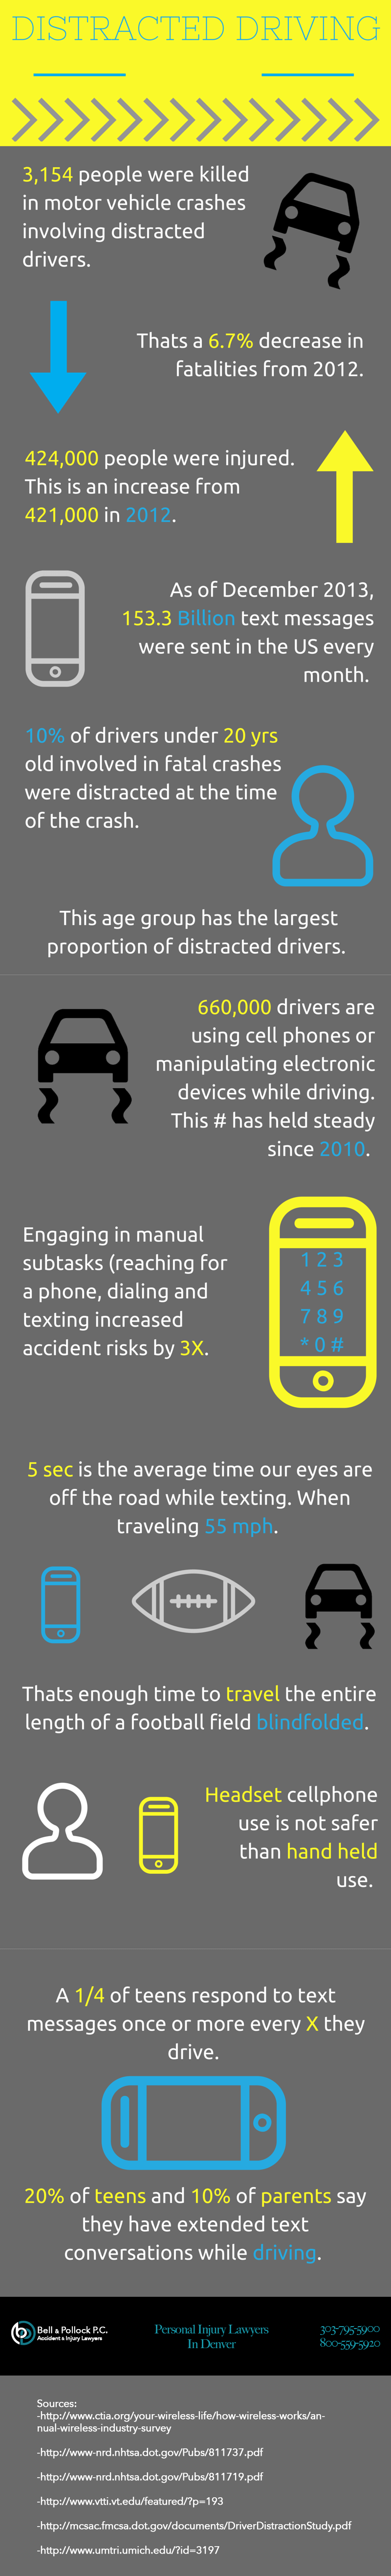 APR - Distracted Driving Infographic, Bell & Pollock